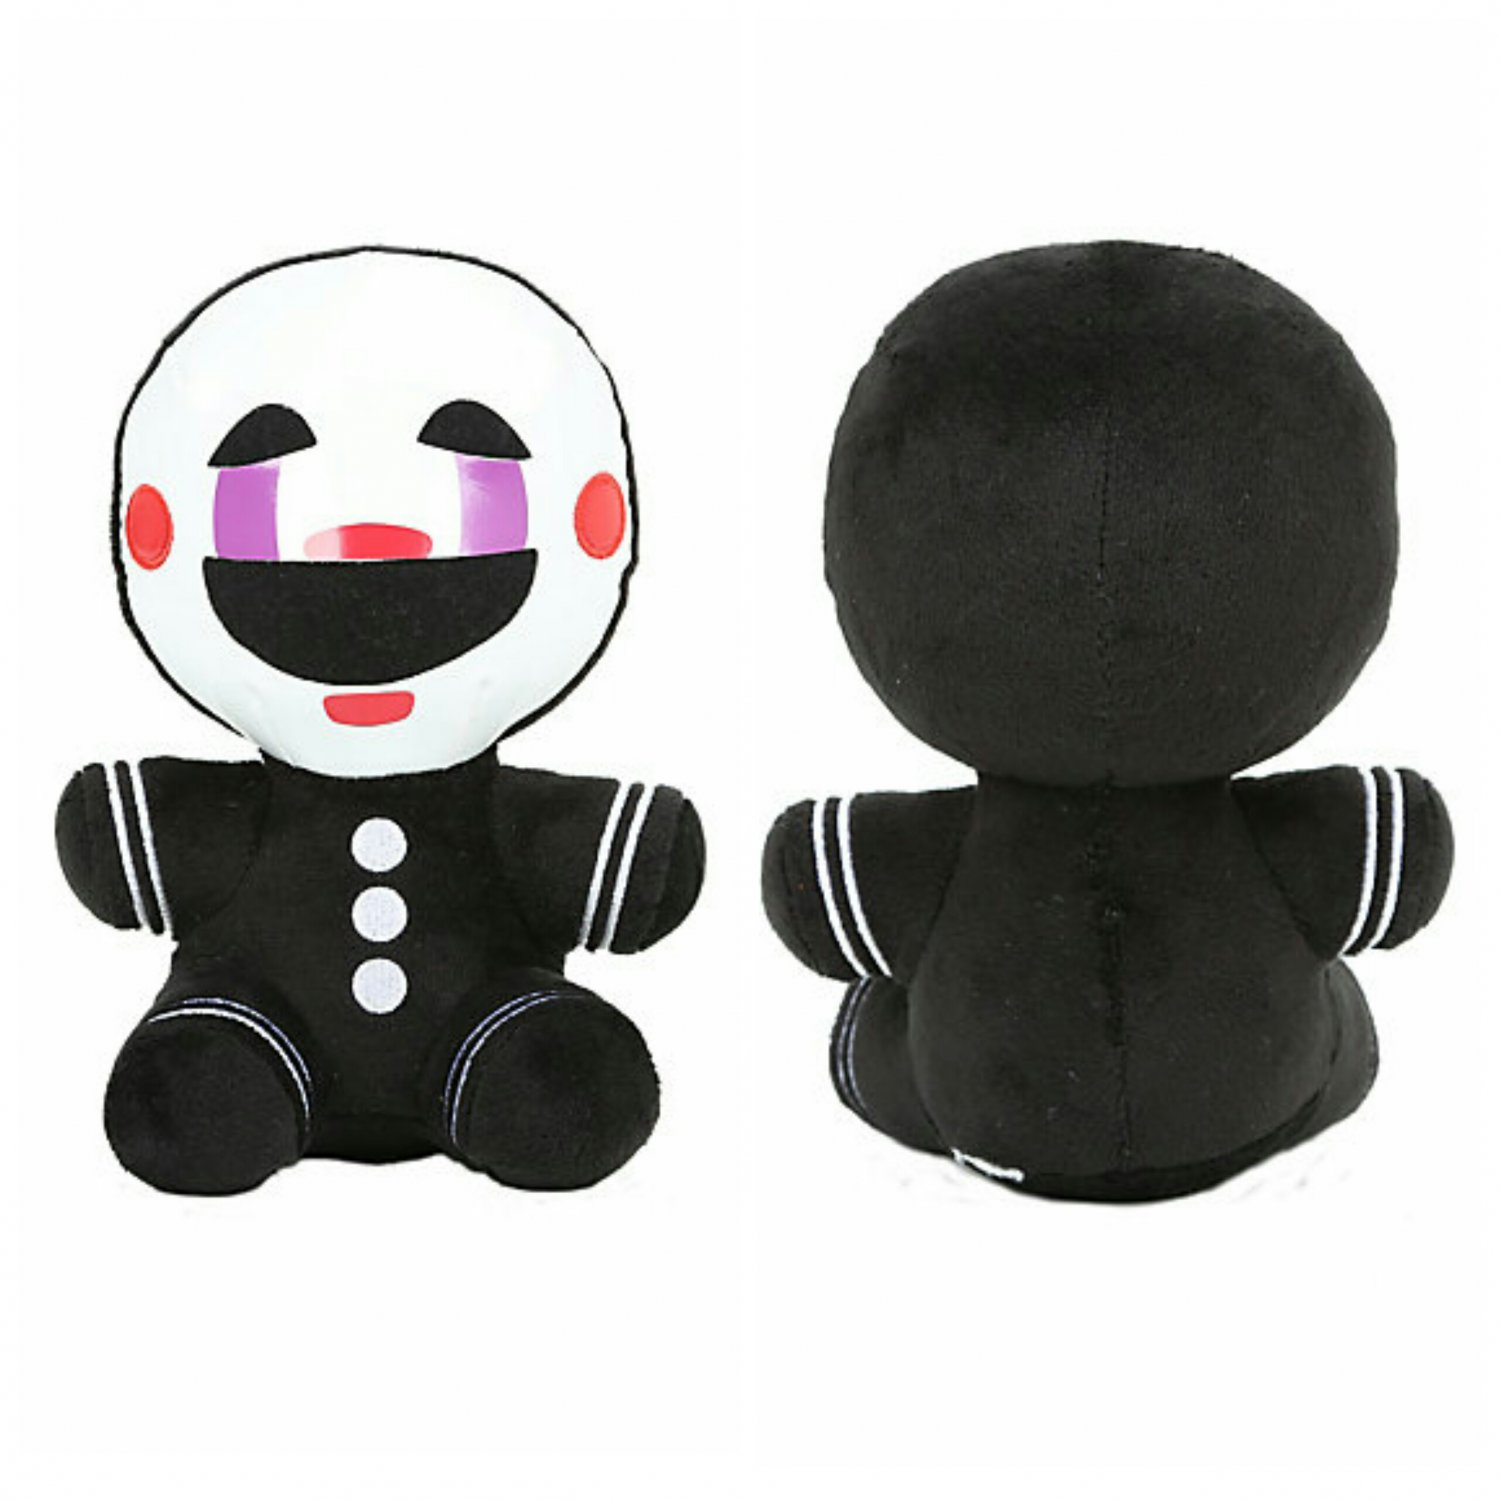 """Funko Five Nights At Freddy's FNAF 6"""" Marionette Collectible Plush Figure"""